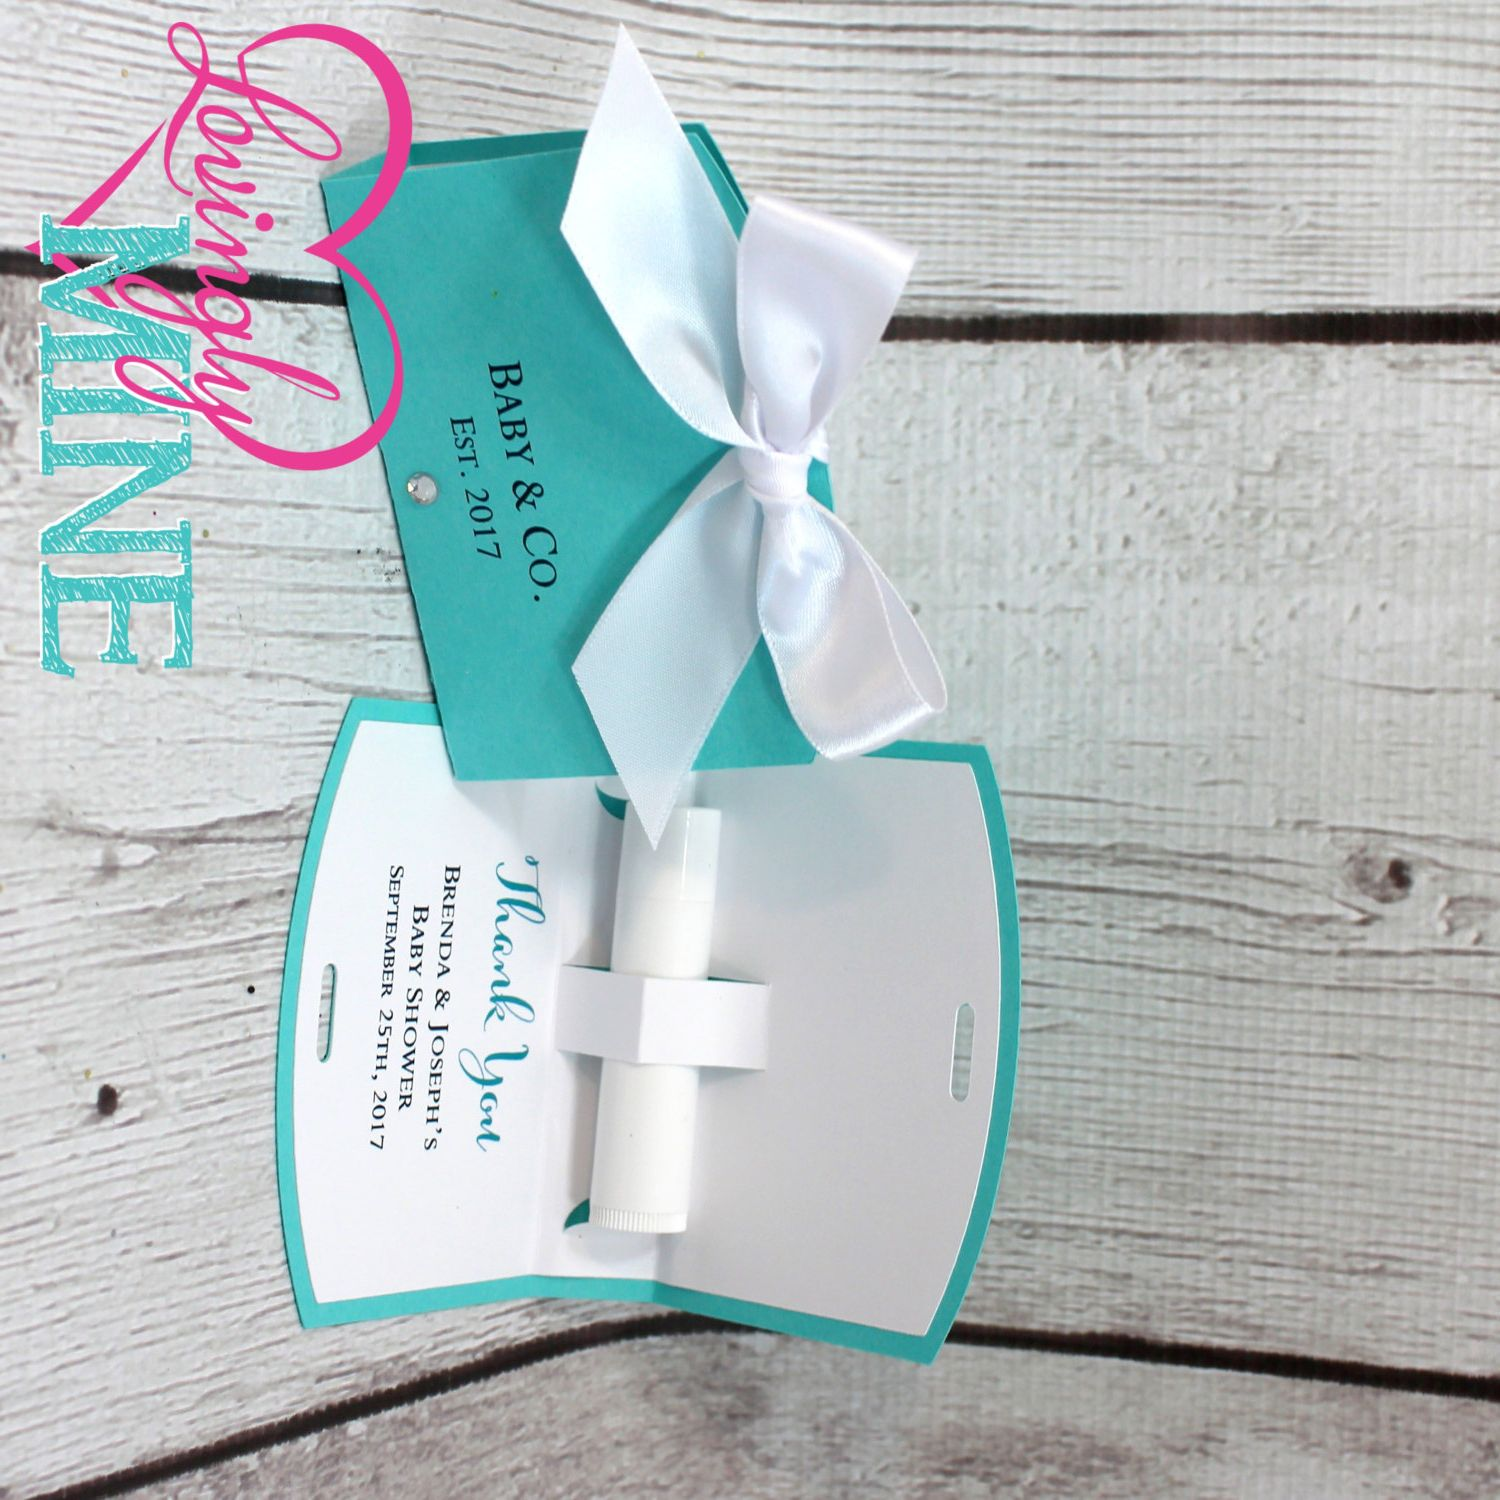 Tiffany Blue - Tiffany & Company - Chap Stick Holder Favor Bags in ...